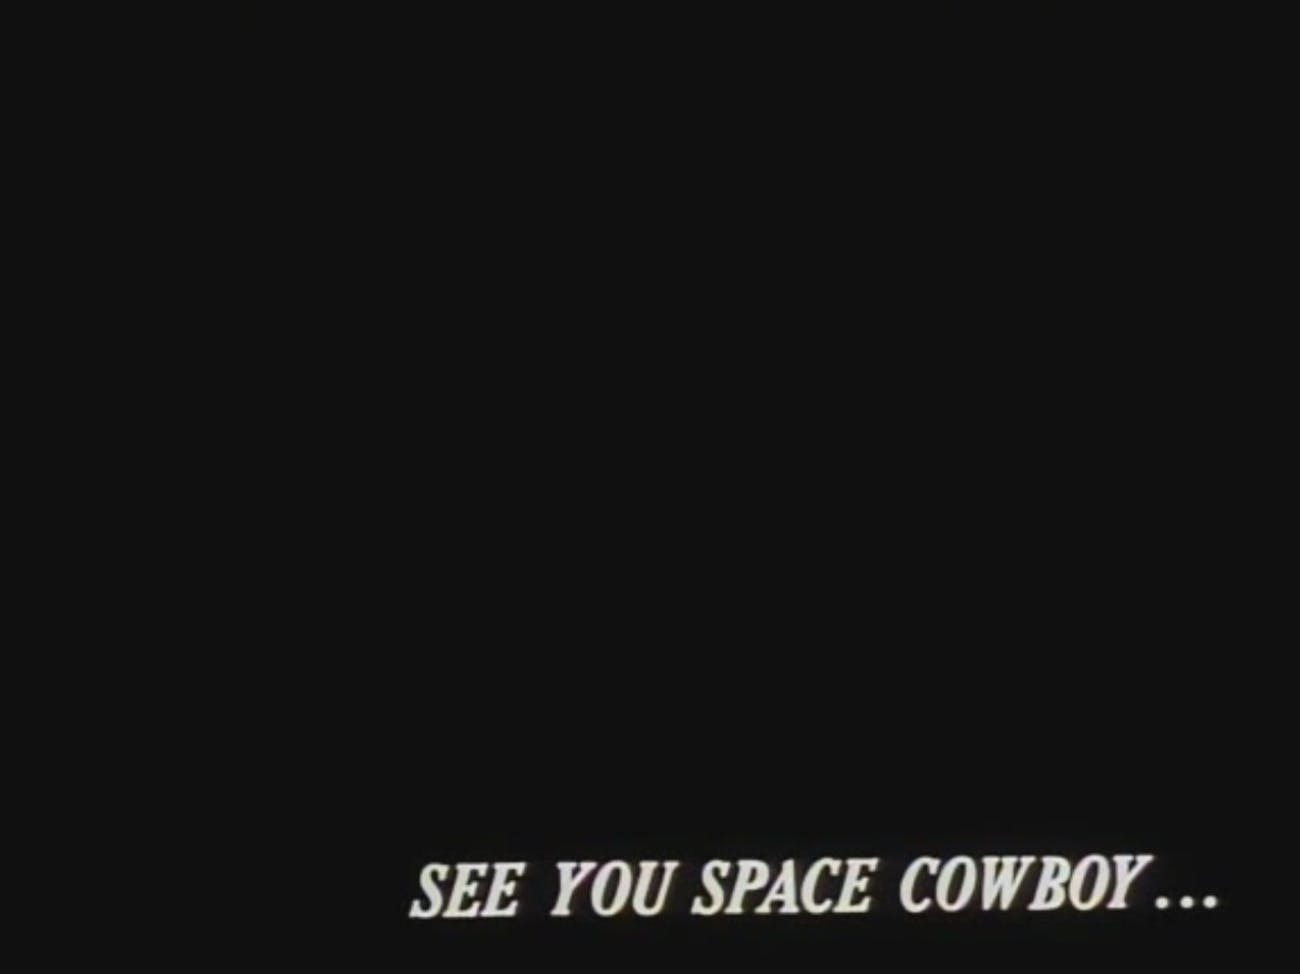 Cowboy Bebop' Predicted the Millennial Experience | Inverse